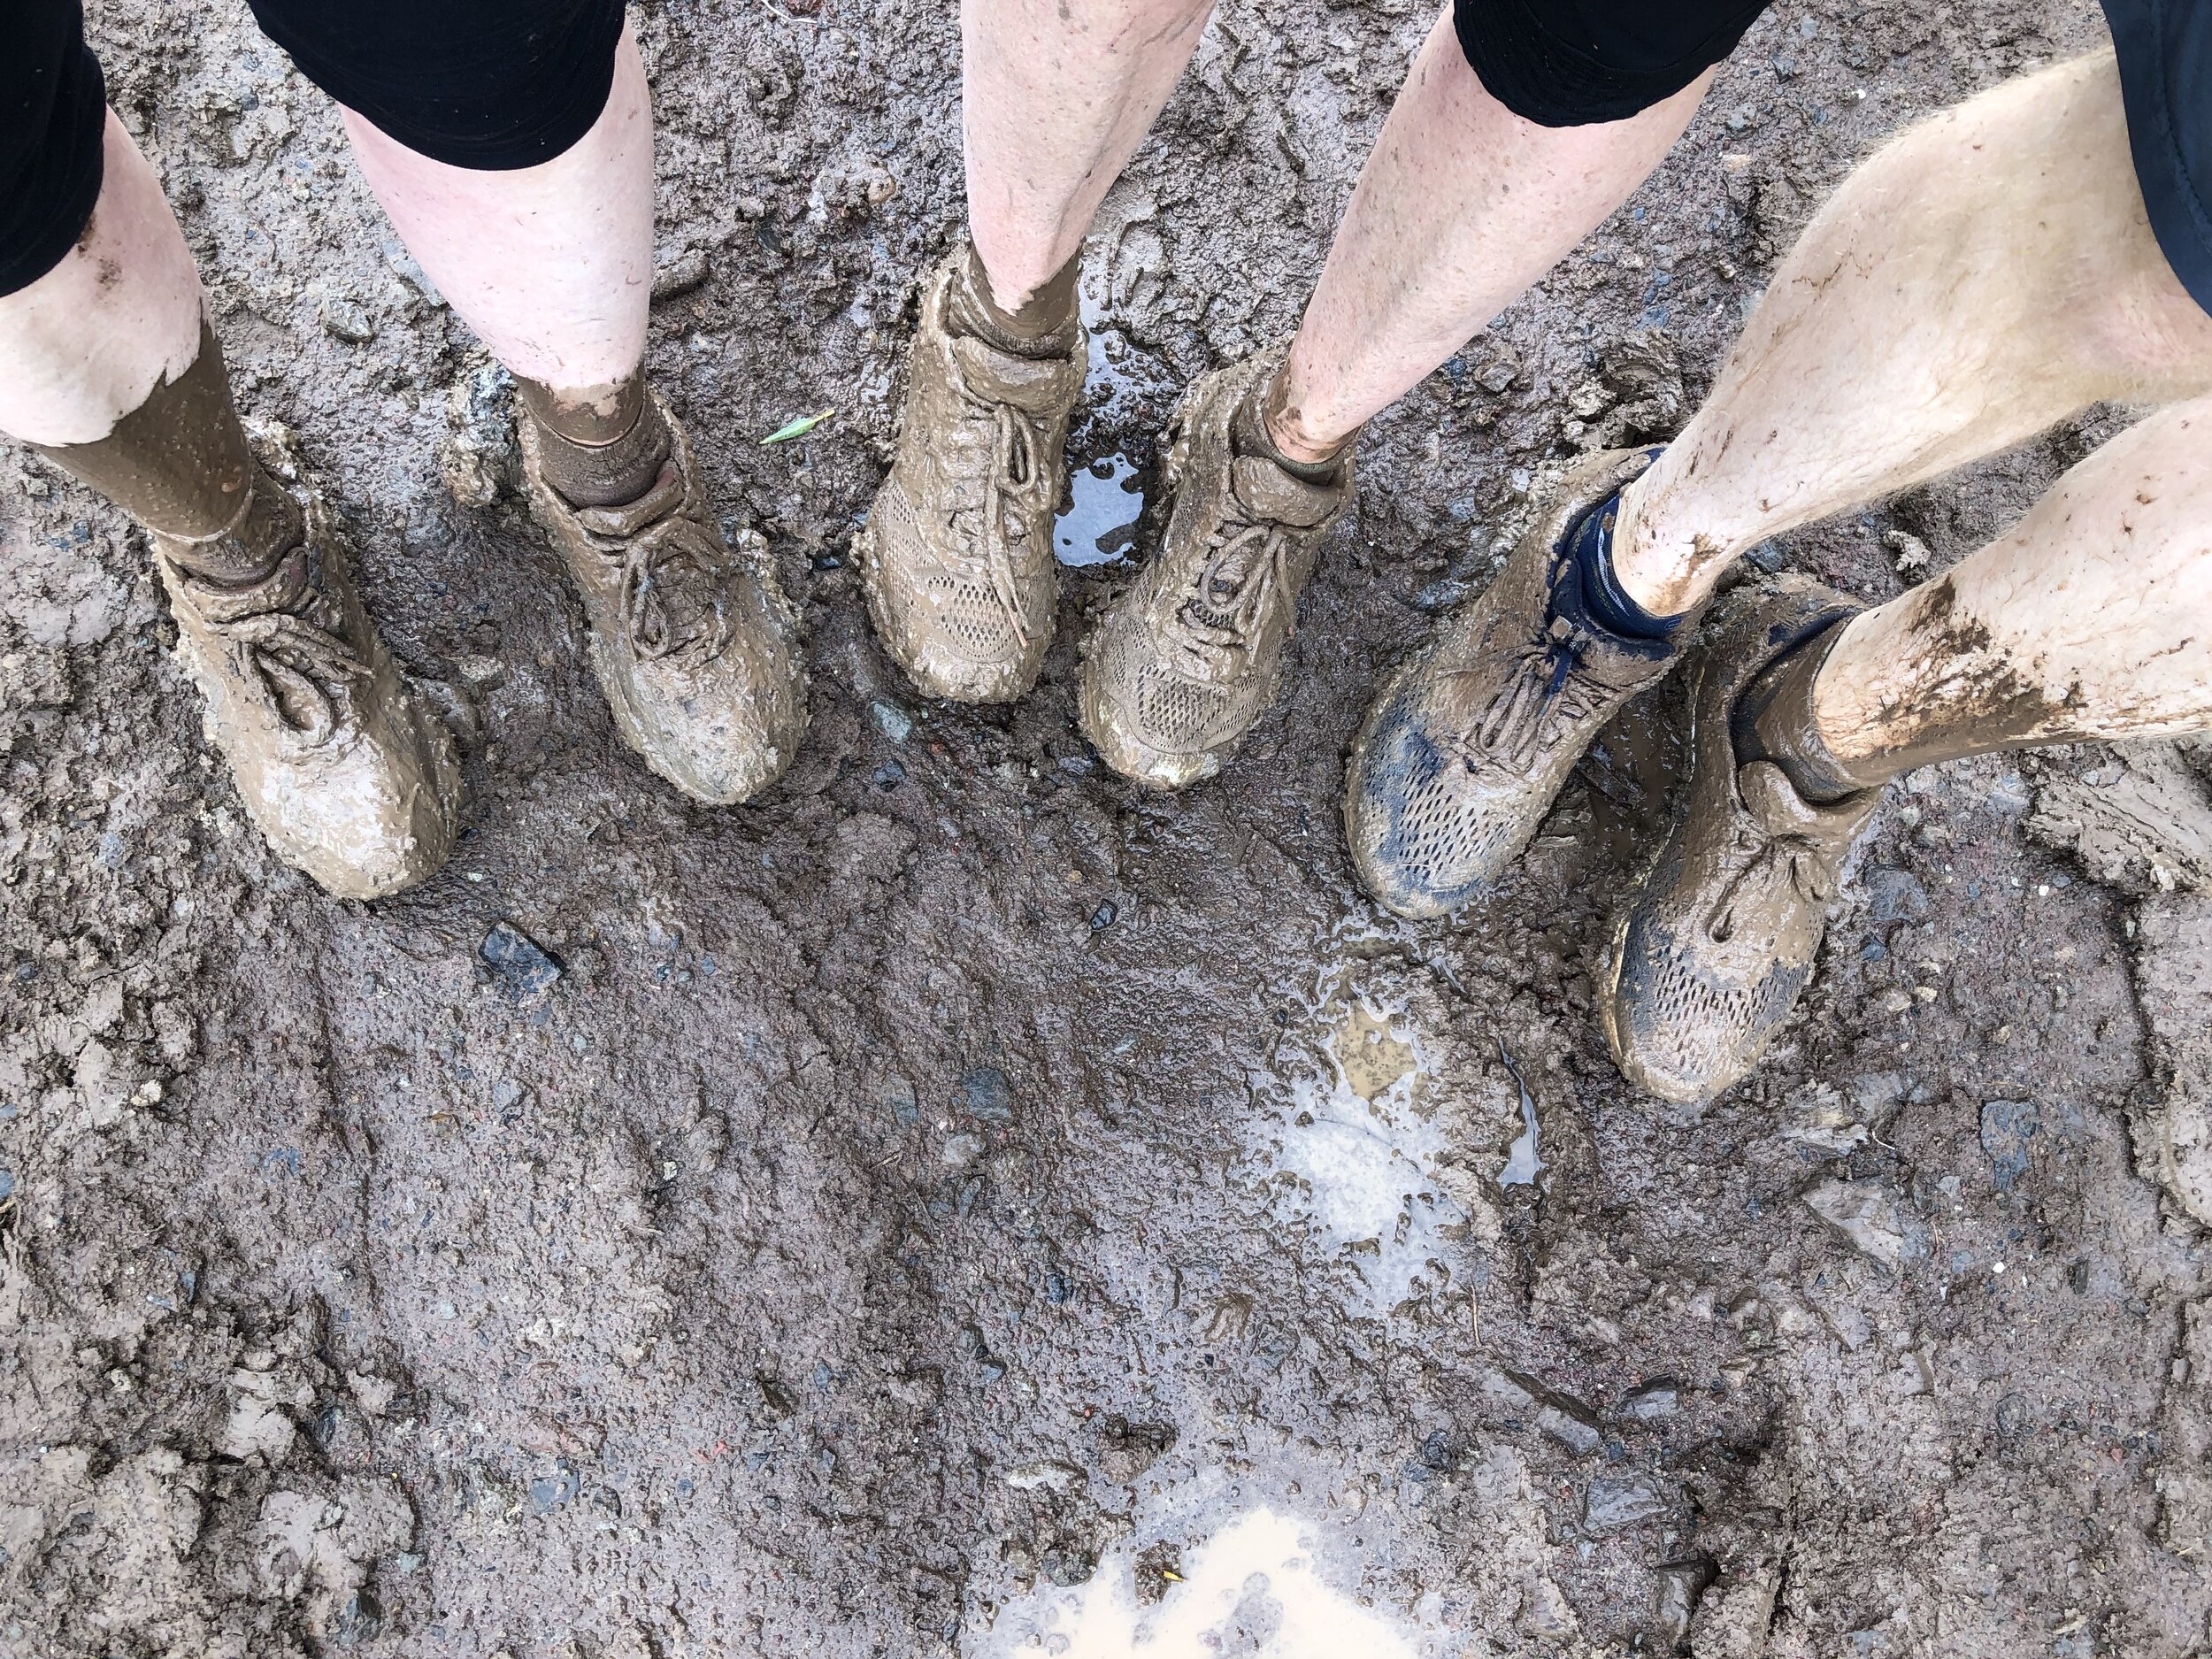 No one lost a shoe. But we all sunk down to mid-calf at some point.